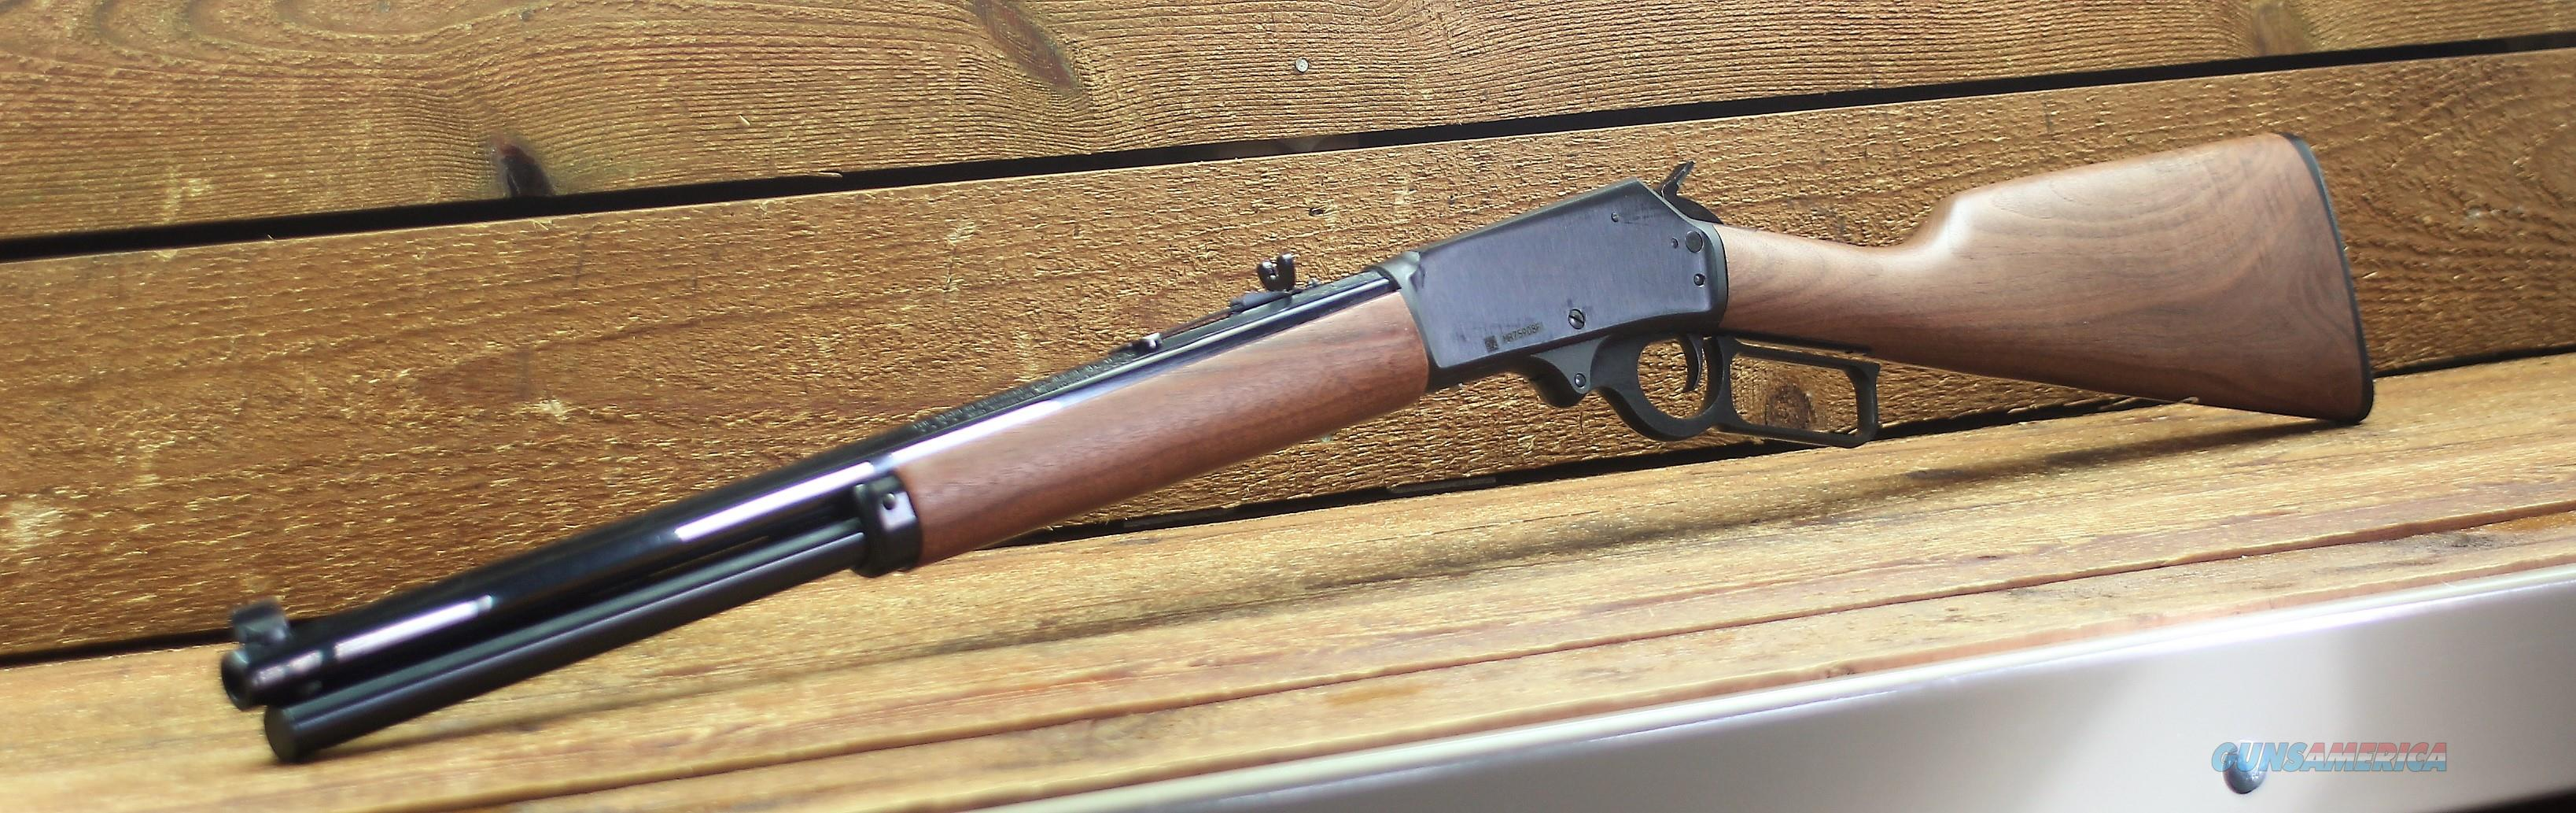 $44 EASY PAY  Proud of the American Design Marlin model 1895 Cowboy Lever Action Walnut Stock Wood  Big Game Hunting Metal Finish Rifle Caliber 45-70 Government Octagon Muzzle marble carbine front sight octagon 6-shot MAG barrel 70458  Guns > Rifles > Marlin Rifles > Modern > Lever Action